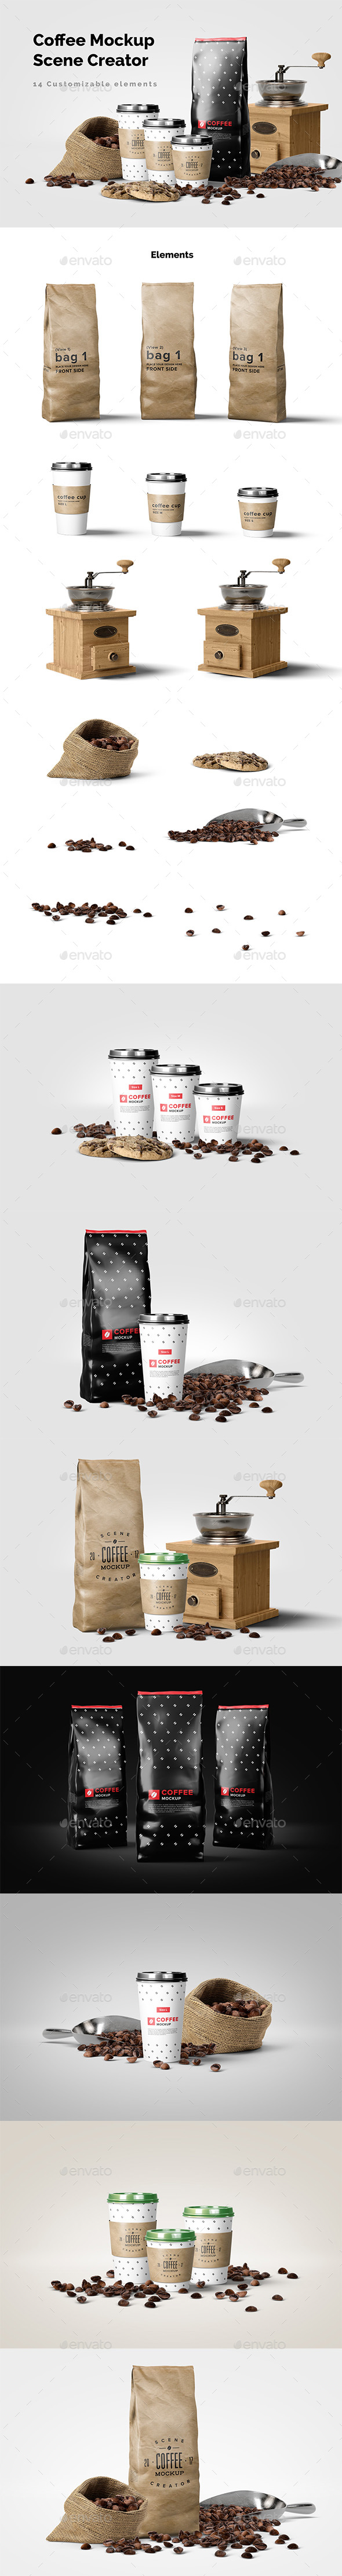 Coffee Mockup Scene Creator - Food and Drink Packaging